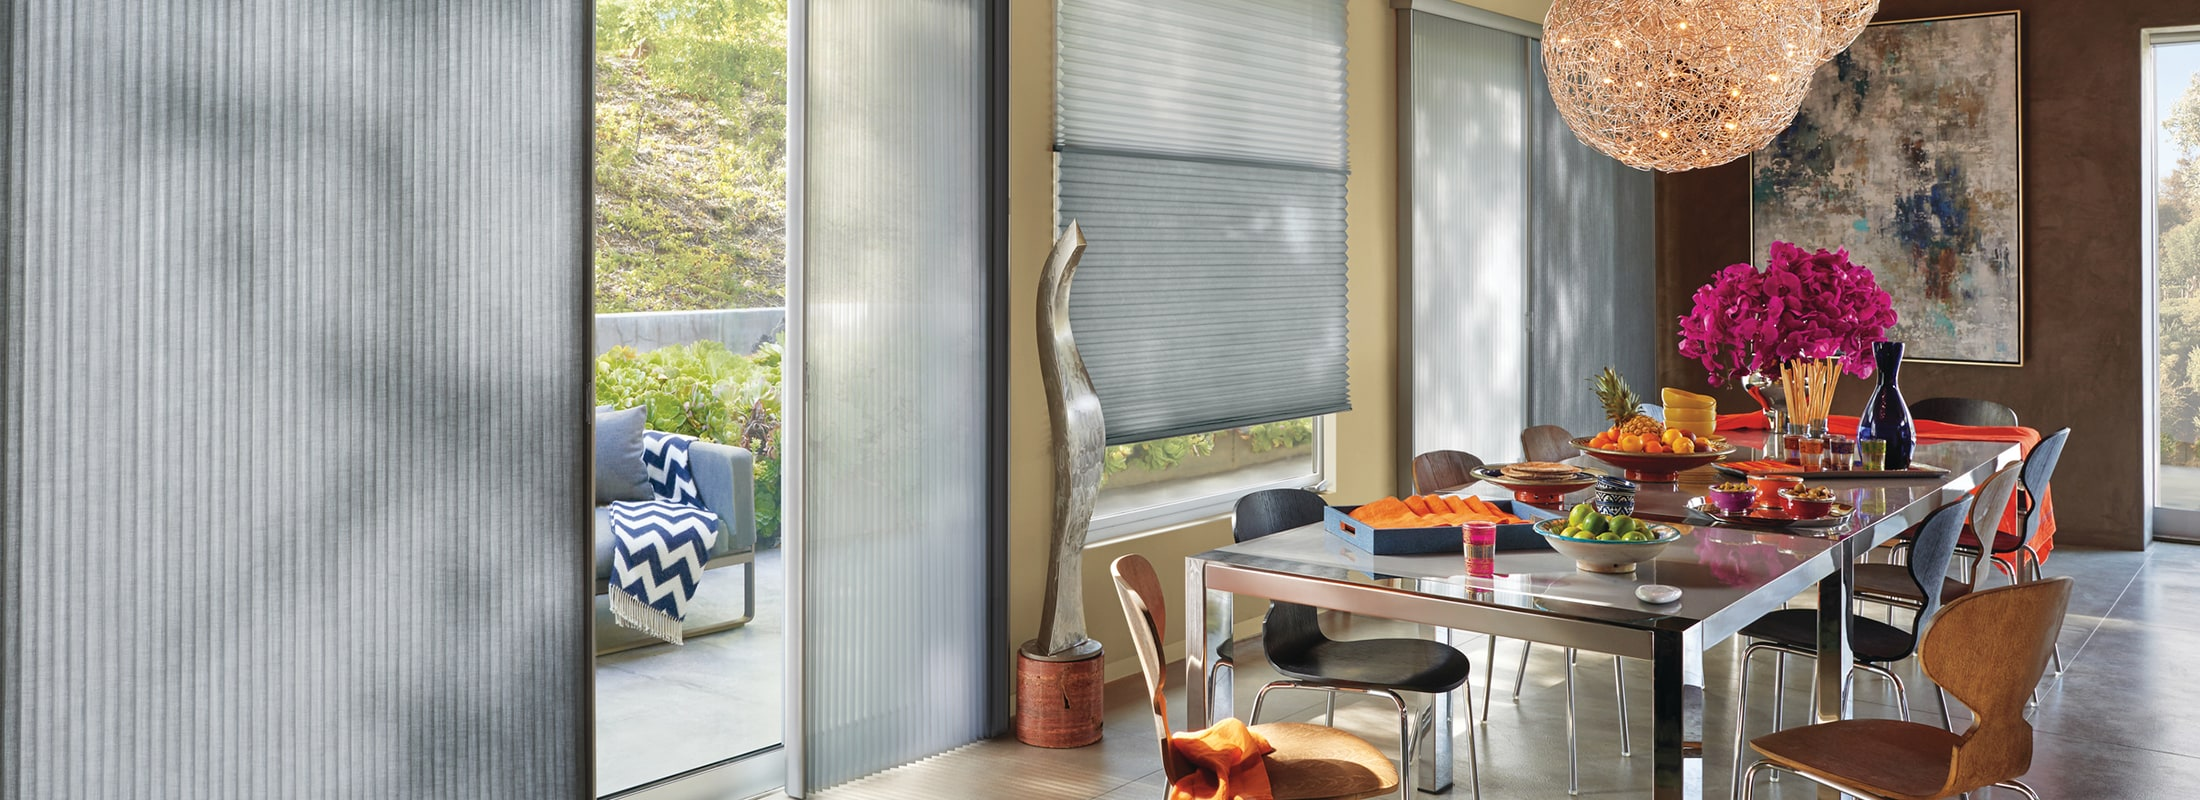 Honeycomb blinds in Alustra Myst™ and Whisper™, Silver Myst and Silver Glisten - Duette